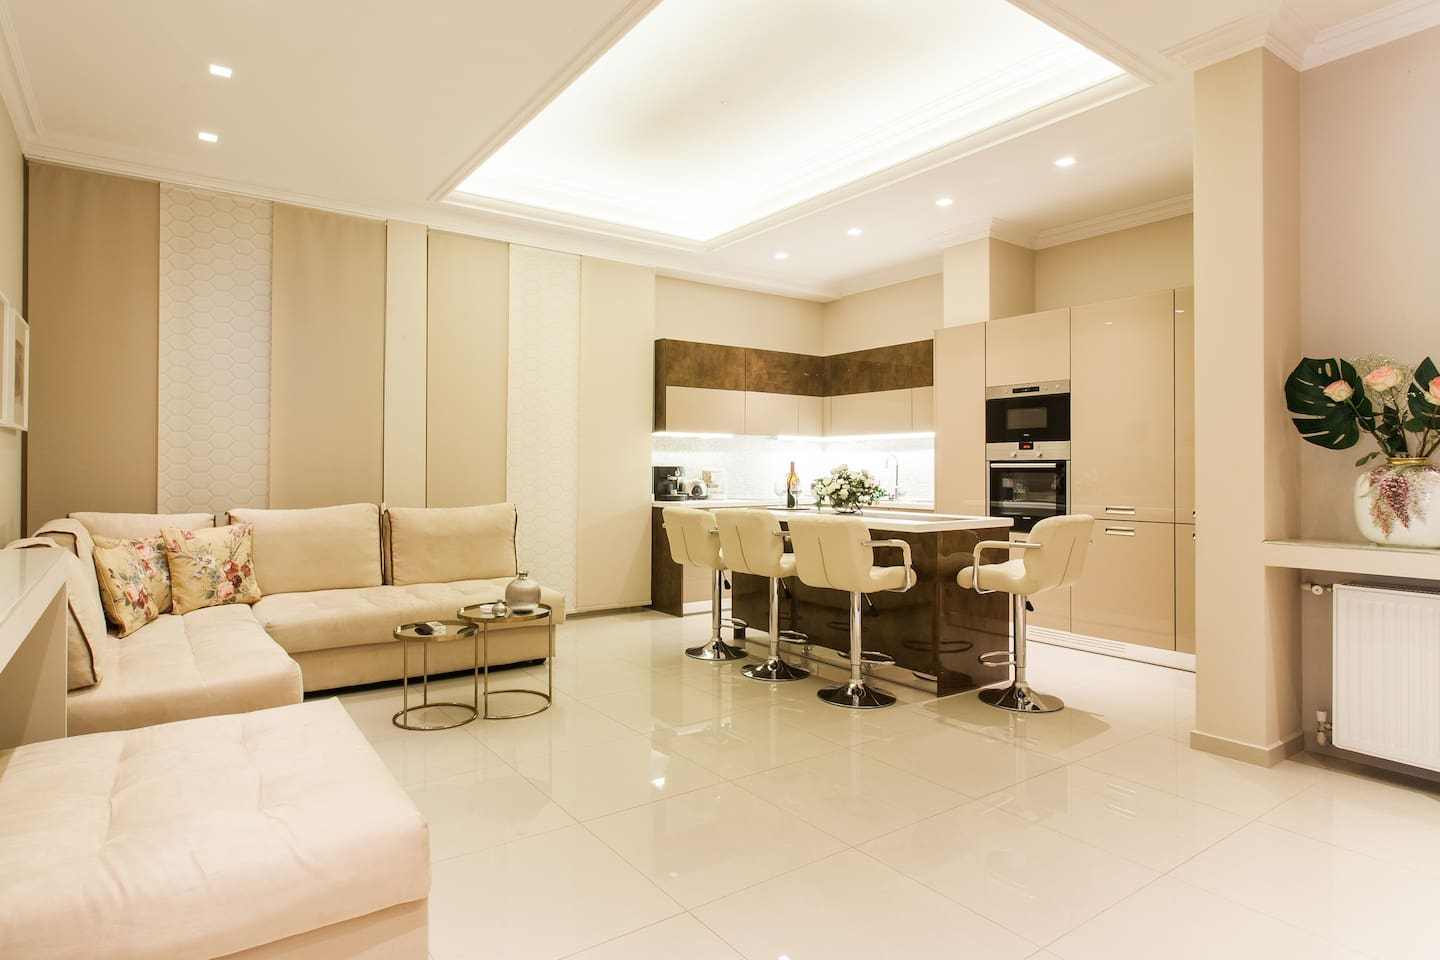 Open concept living room with kitchen island [Registration Number: 00000126409]